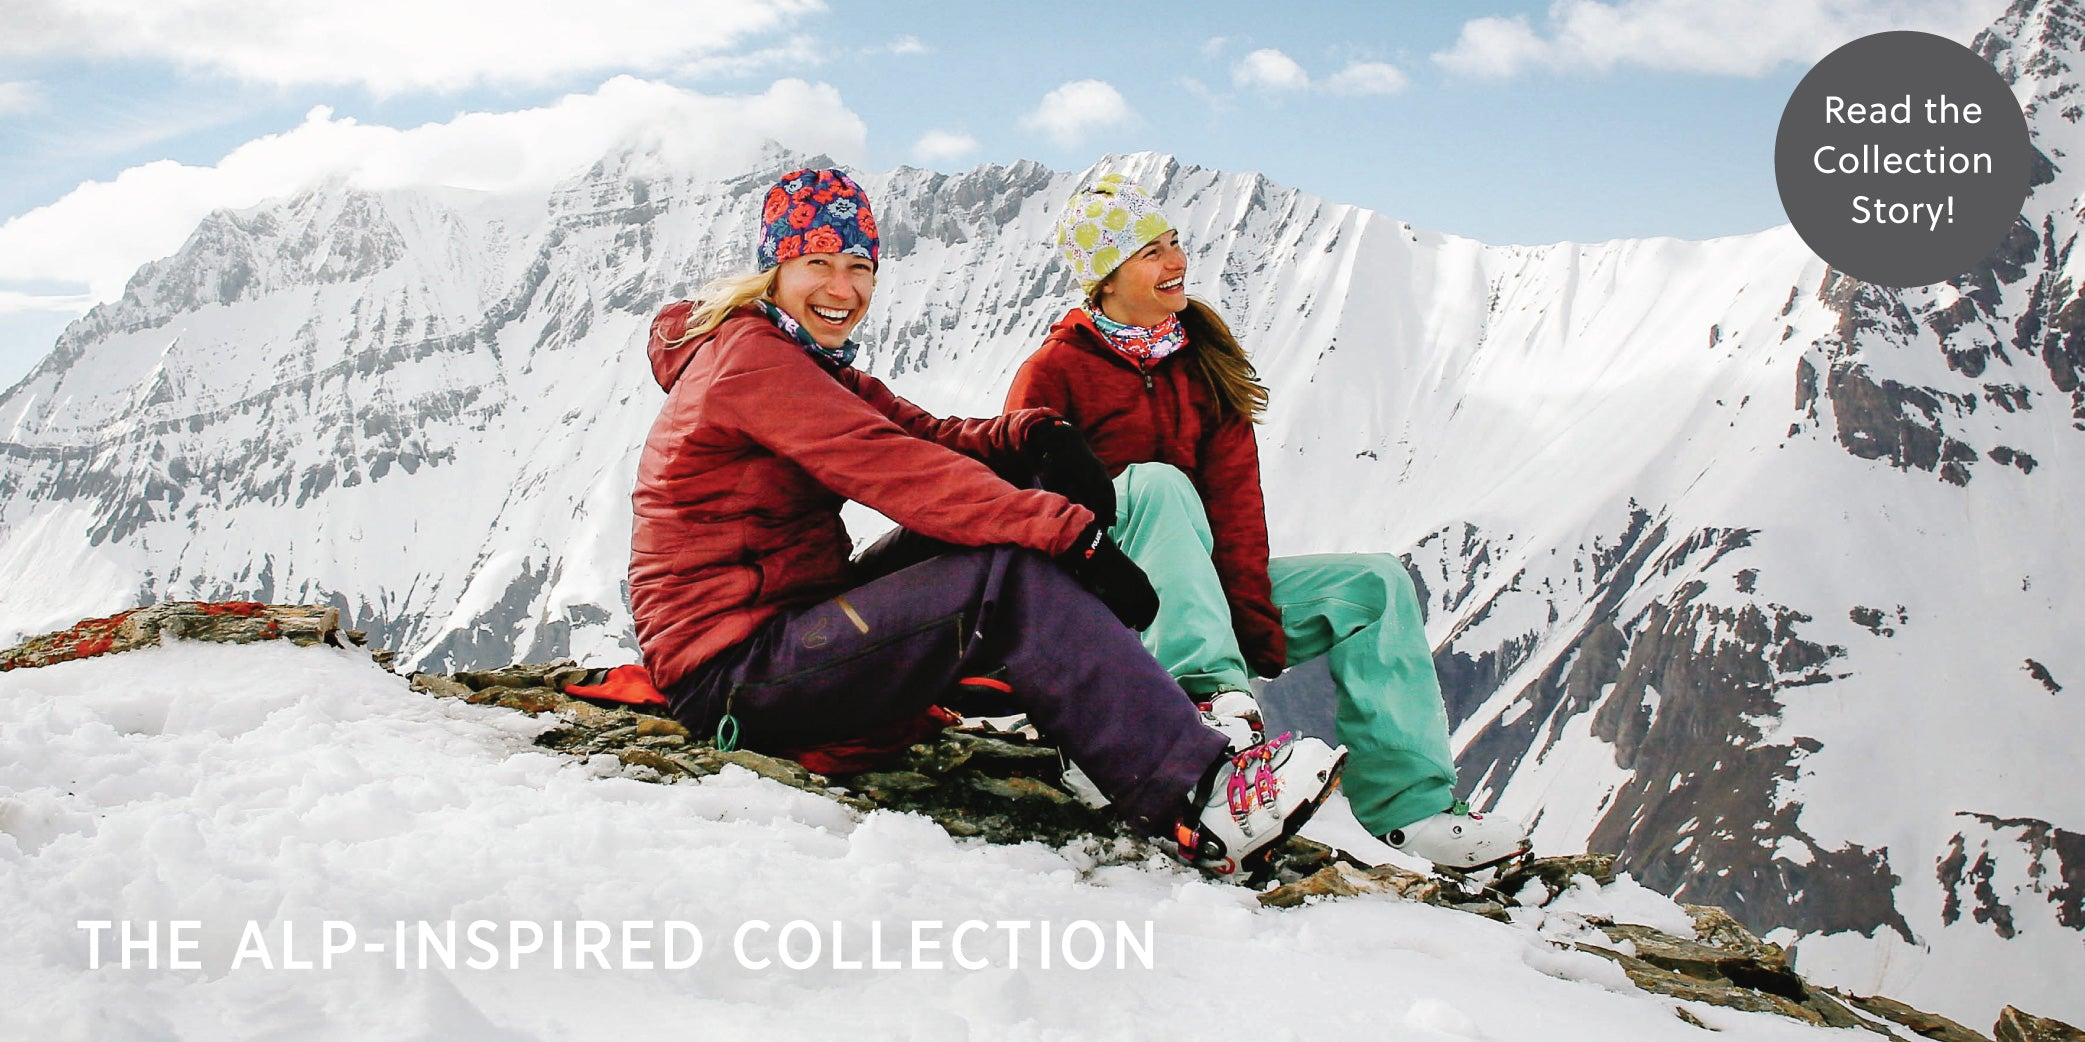 Skida | Explore the Alp-Inspired Collection